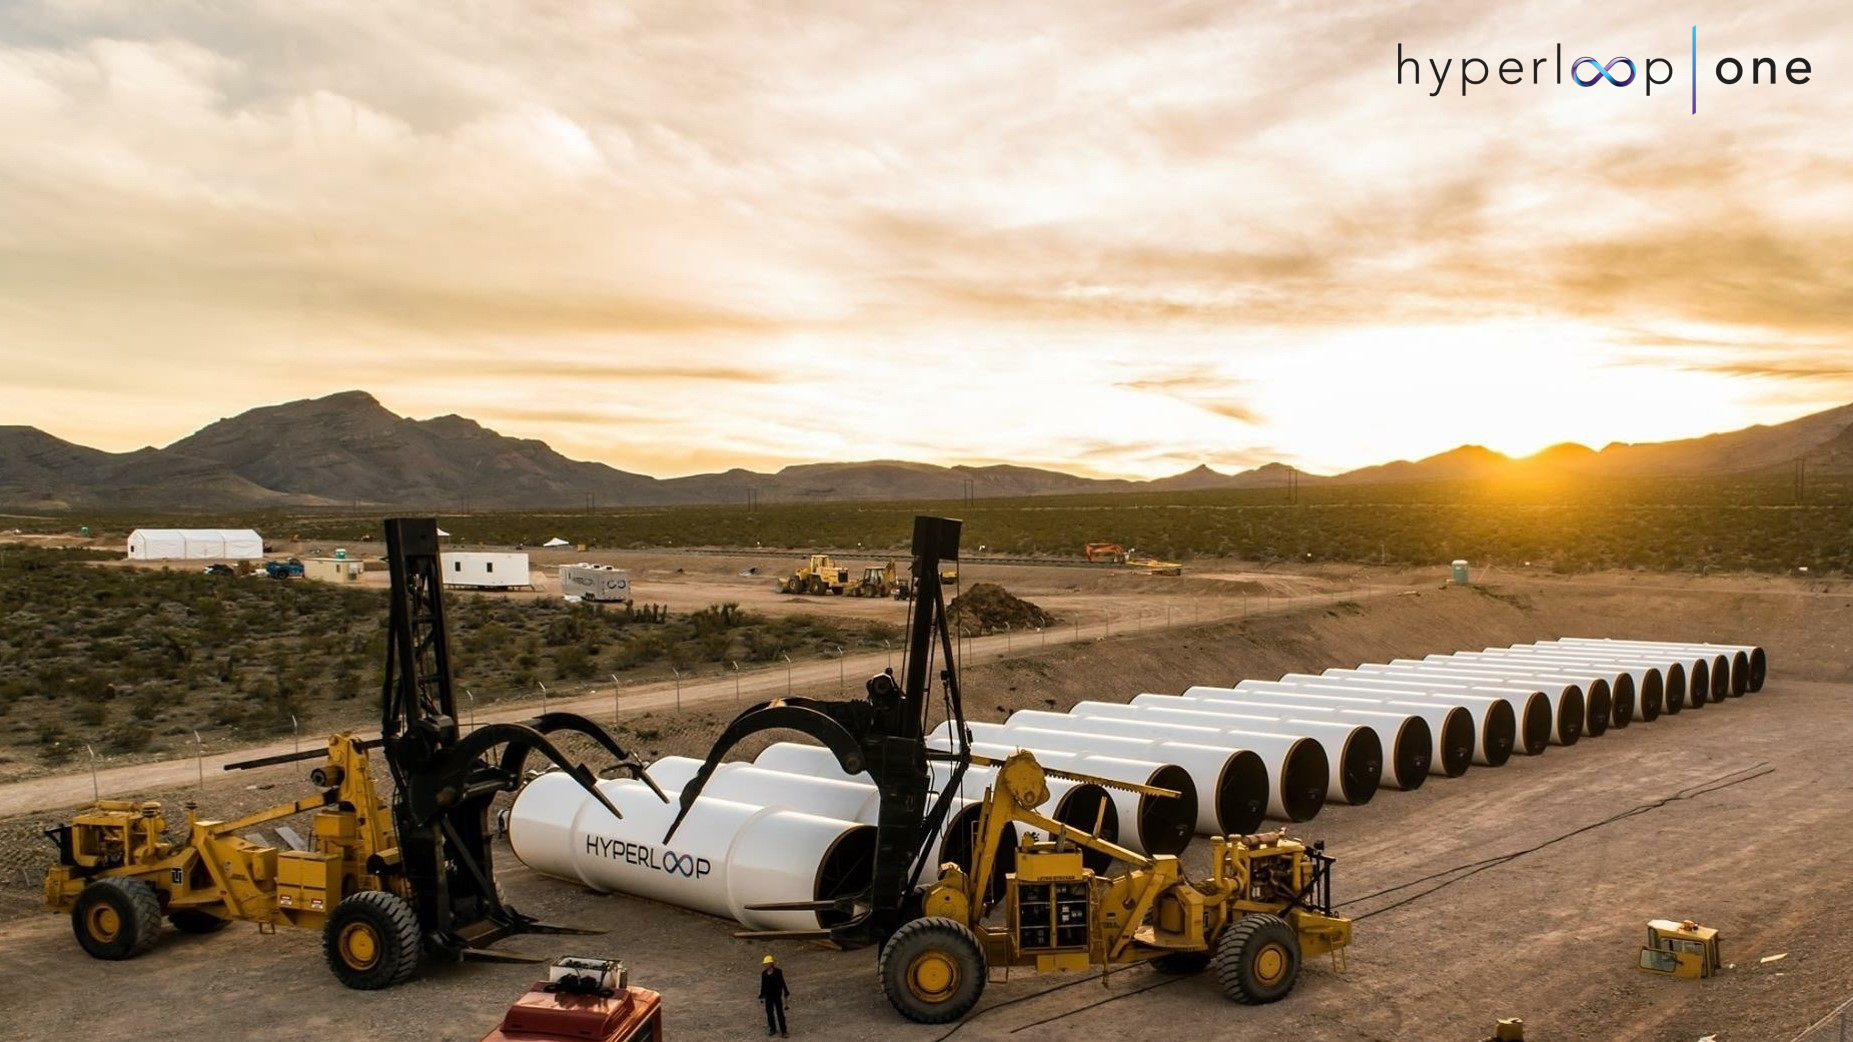 Hyperloop One is building a prototype of its high-speed transport system in Nevada.